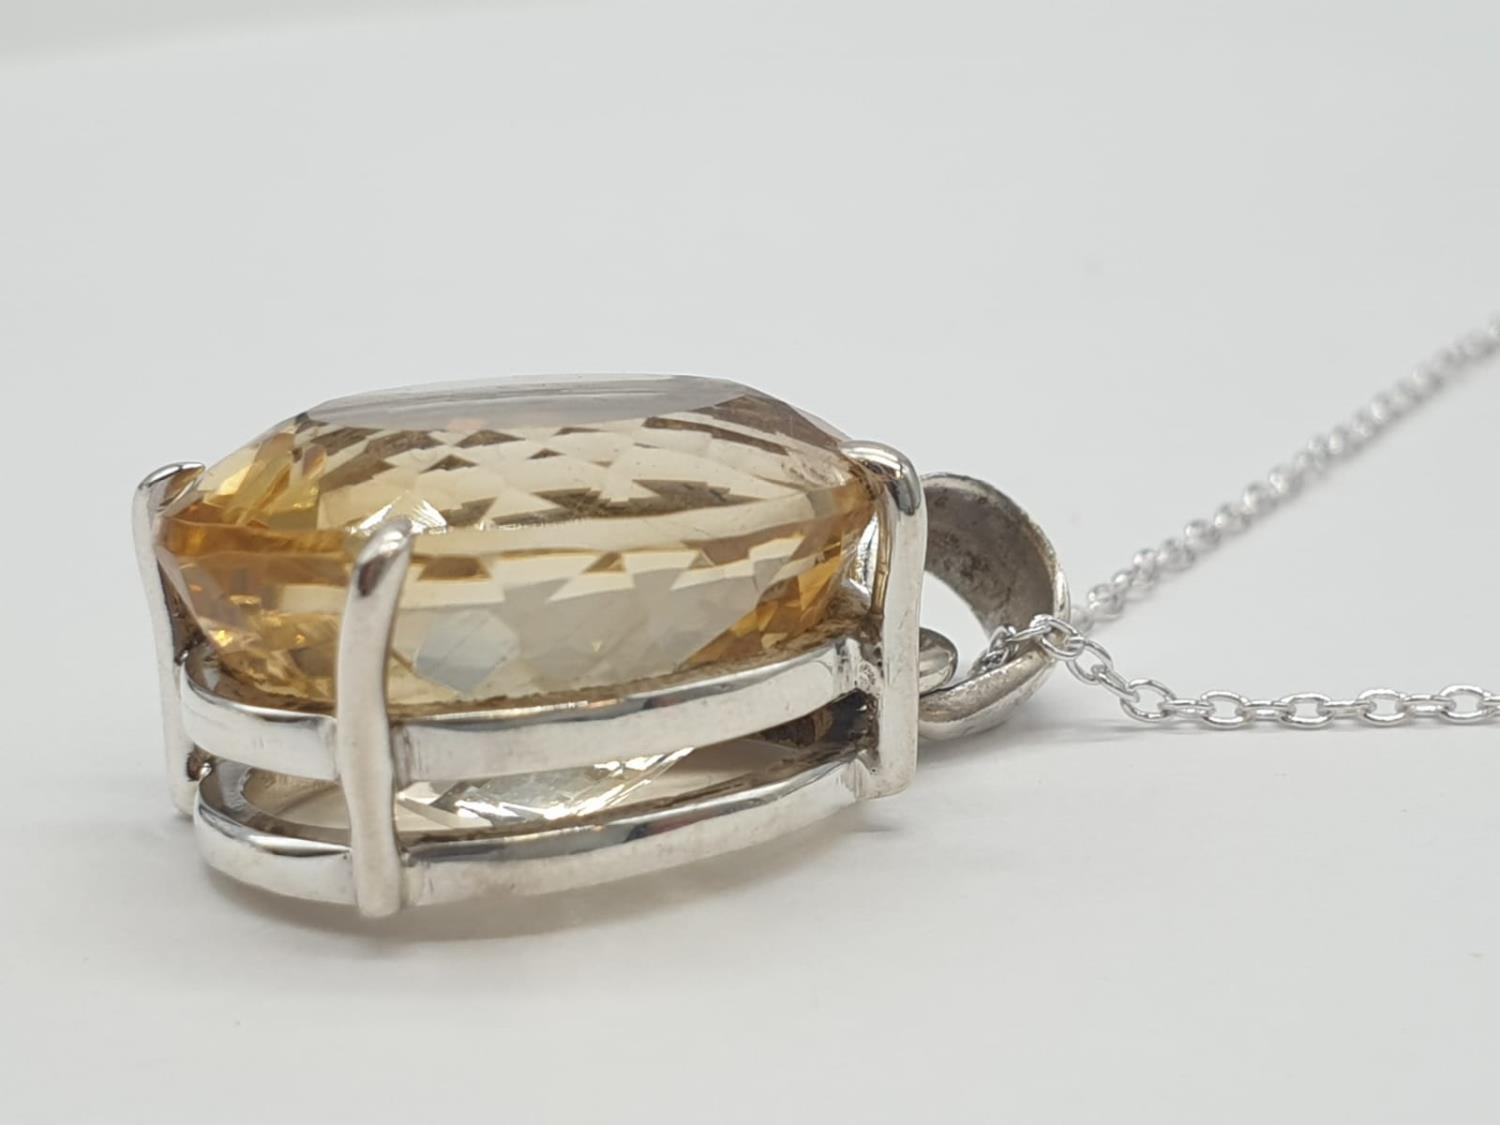 Citrine Gemstone Pendant set in Sterling Silver on a 40cm long silver chain, weight 10g approx and - Image 2 of 6